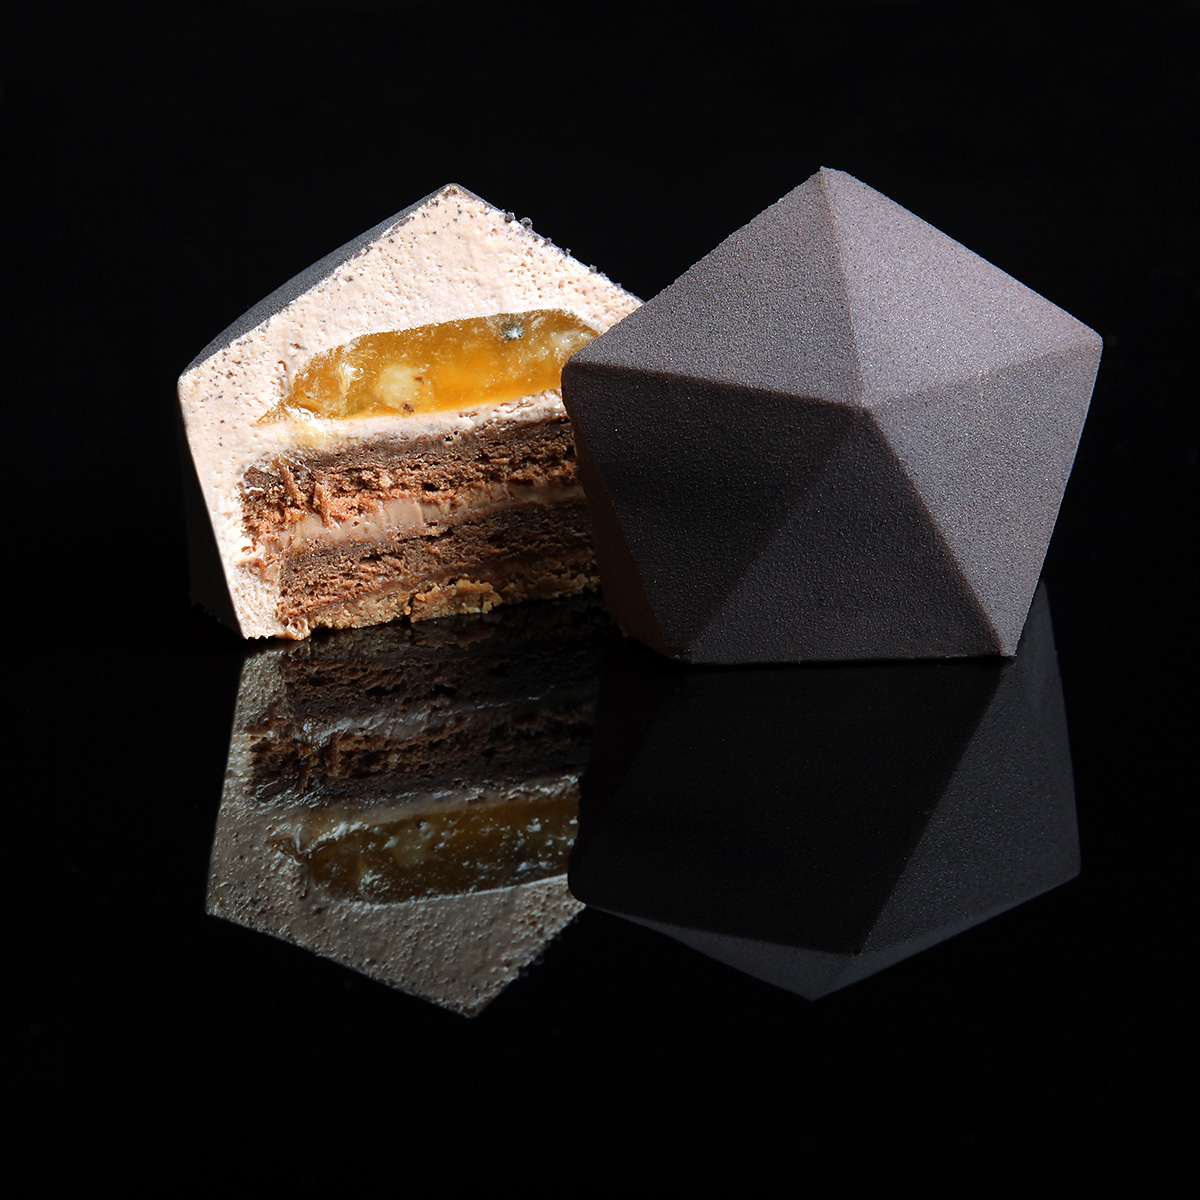 Architectural Cakes by Dinara Kasko | Yellowtrace